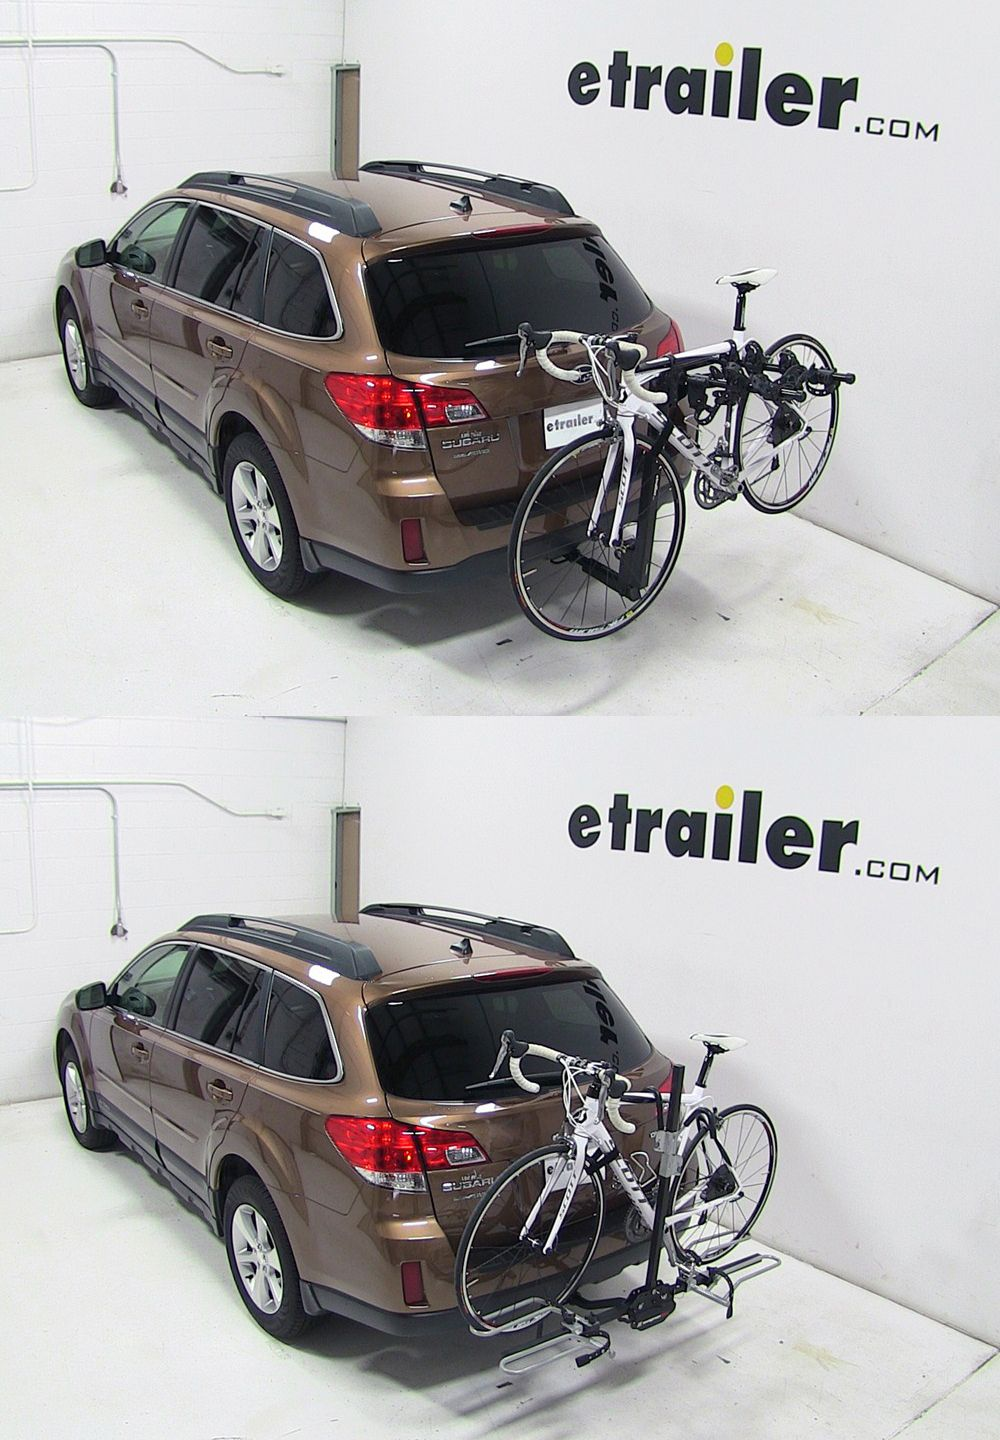 The top 20 best bike racks for the subaru outback wagon based on user reviews watch various bike rack installation videos on a subaru outback and read